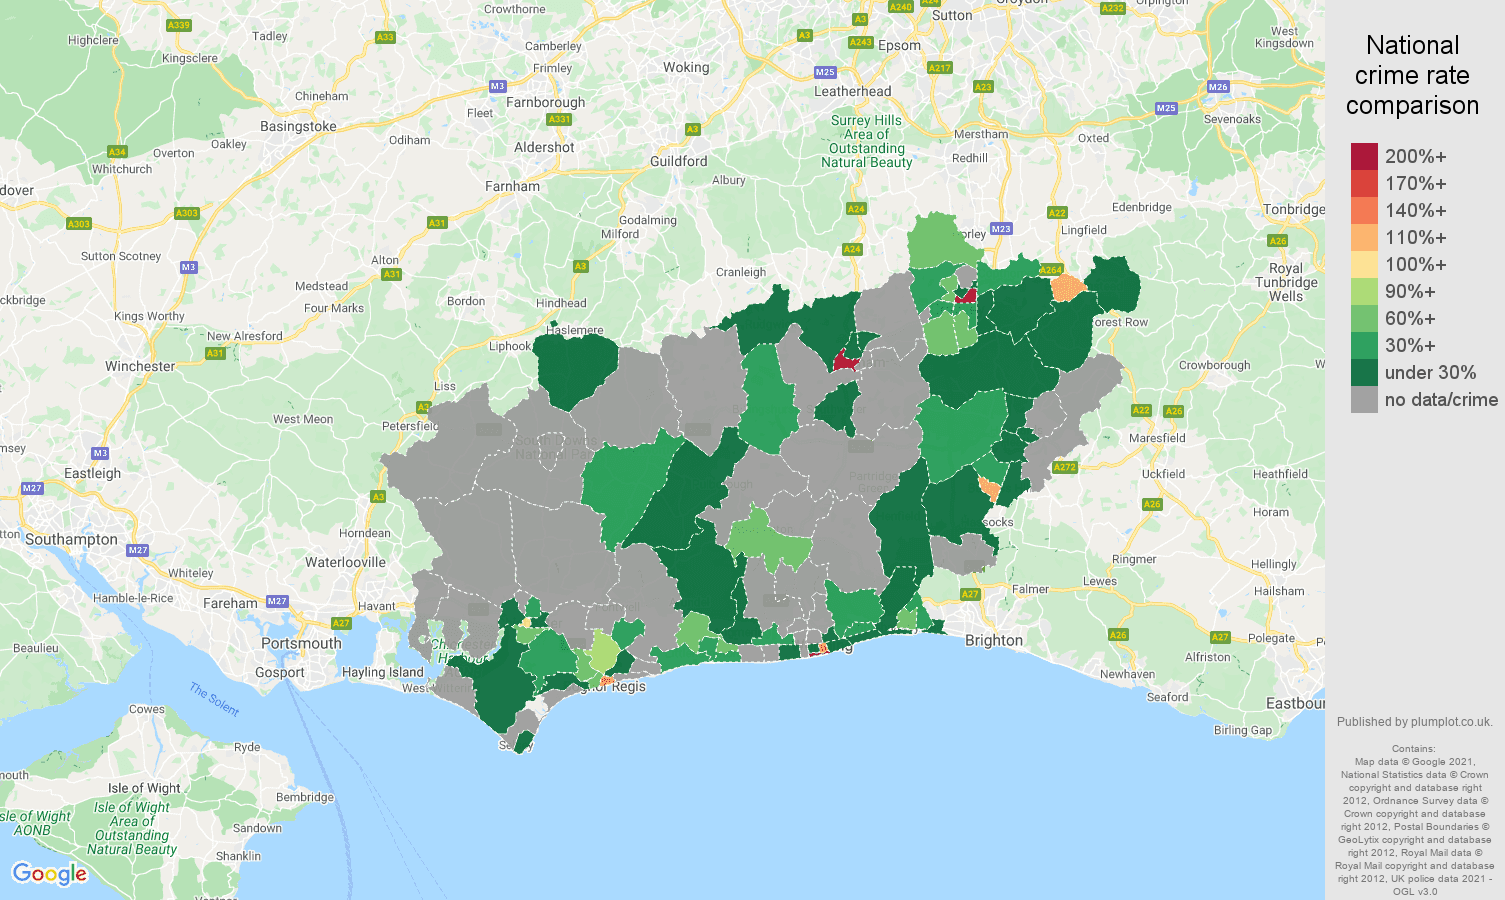 West Sussex theft from the person crime rate comparison map